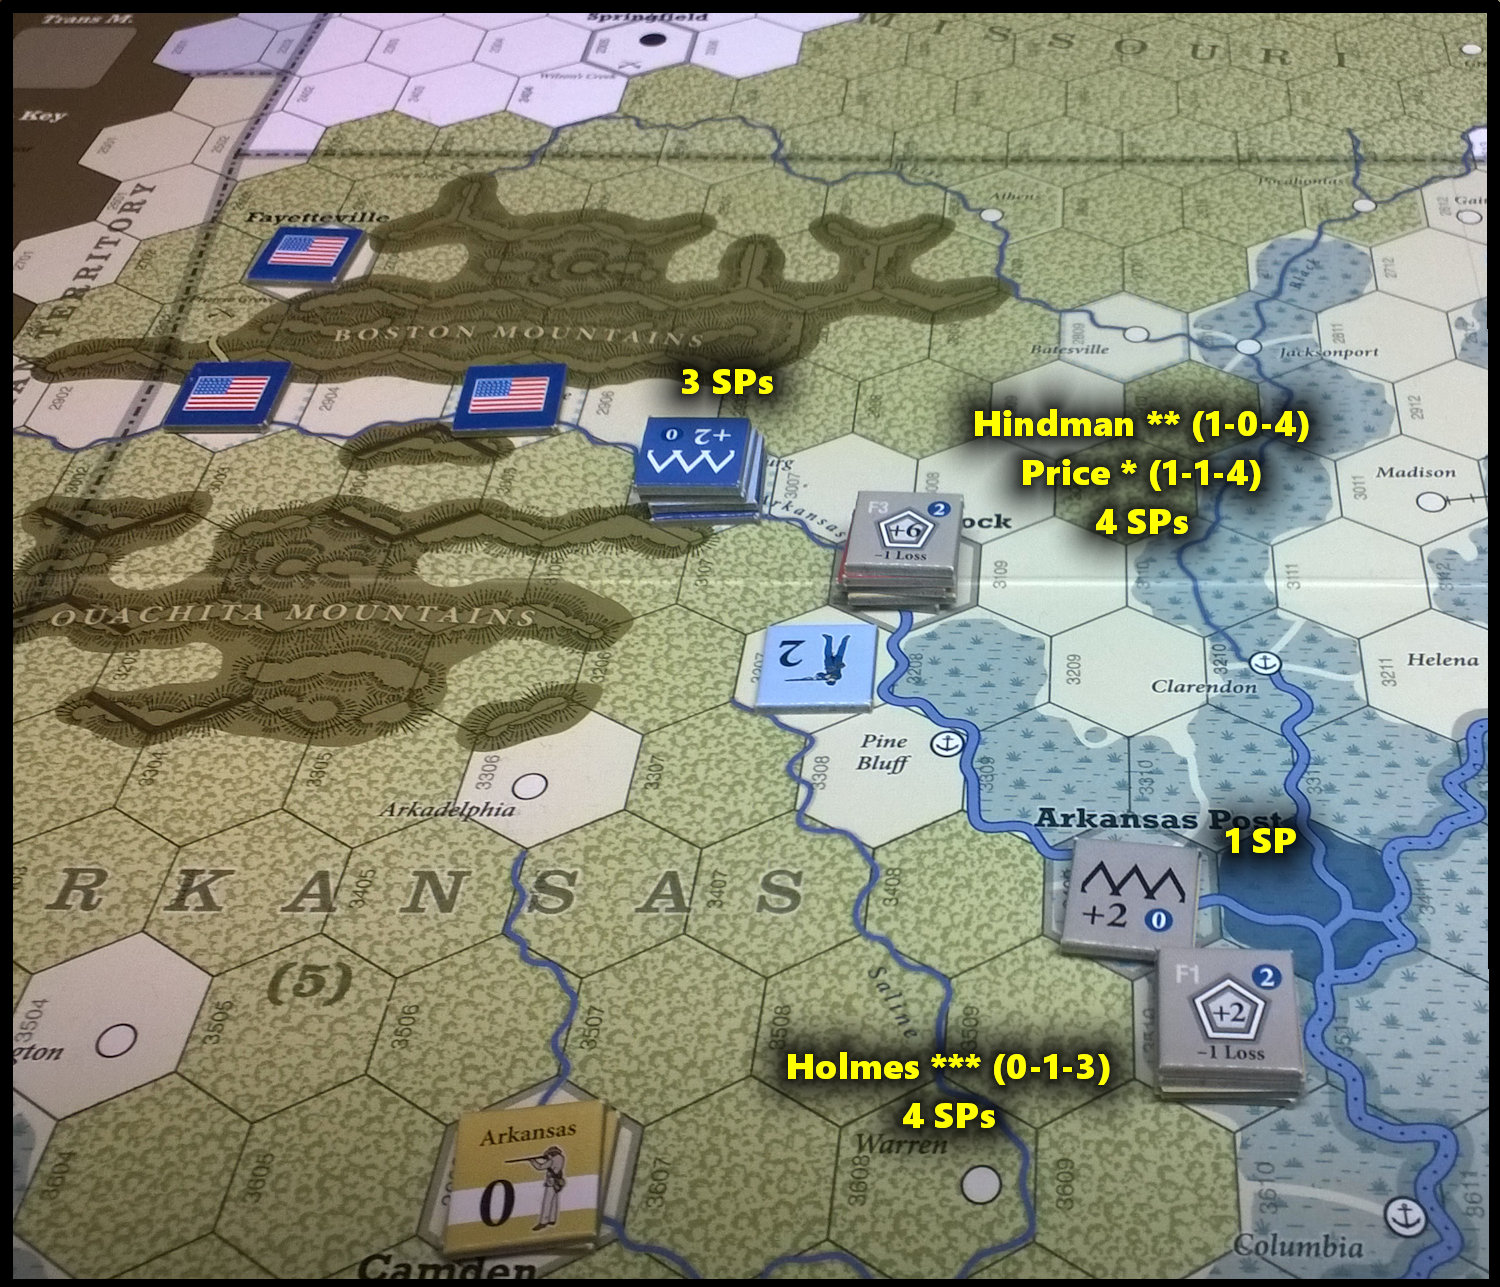 The U.S. Civil War: The Trans-Mississippi Theater at the end of Game Turn 8